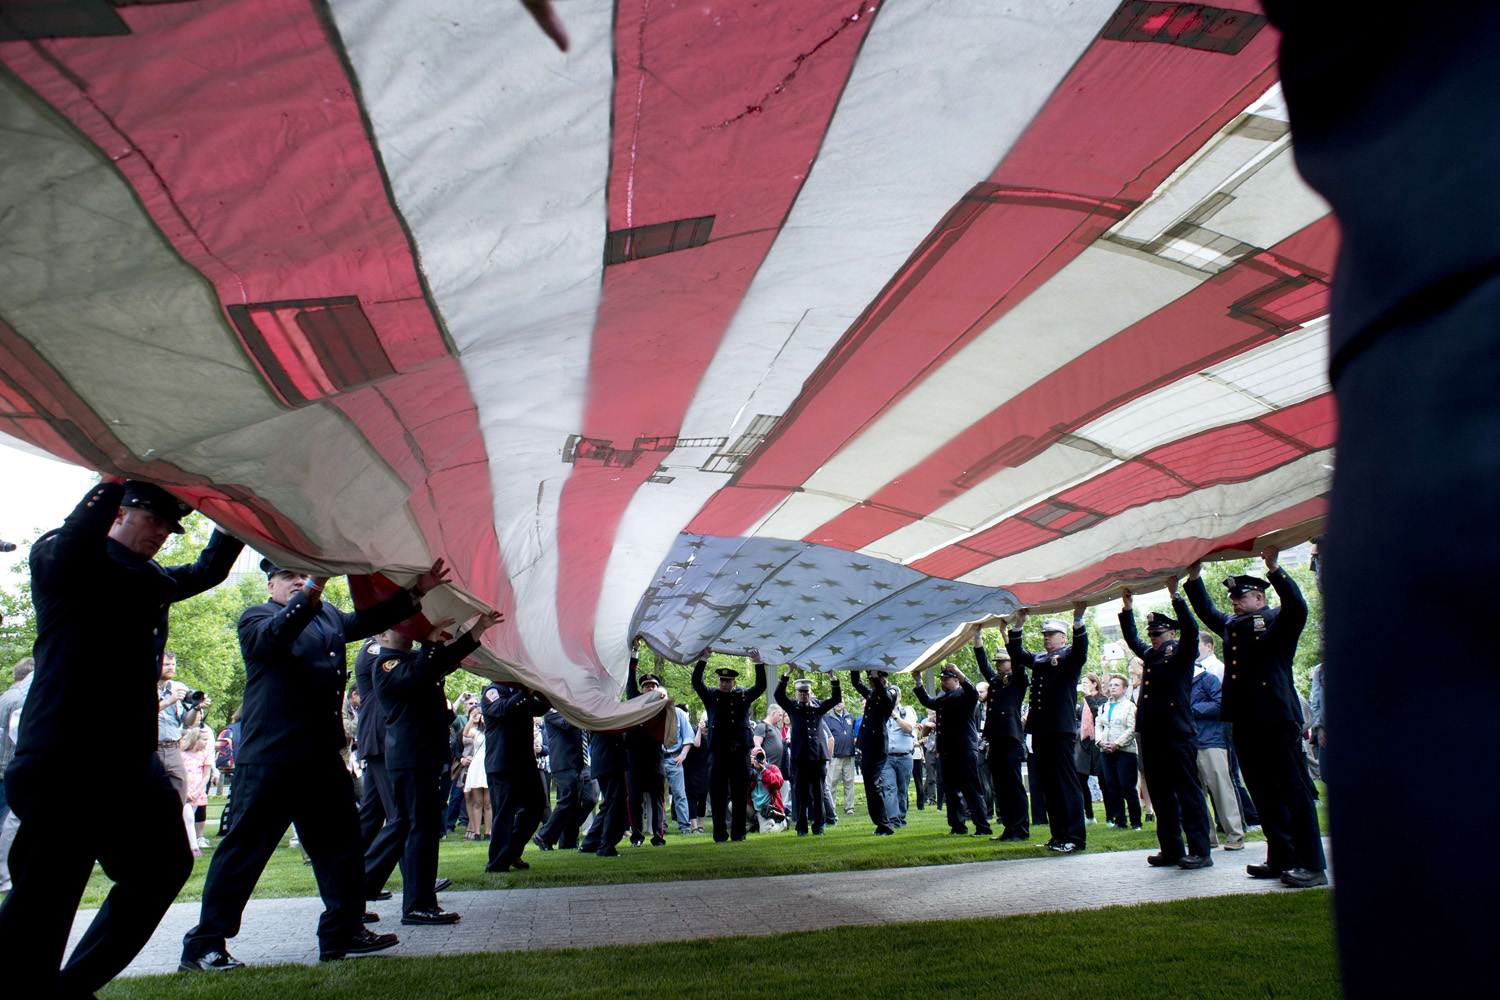 May 21, 2014. The National 9/11 Flag is furled by New York City firemen during a ceremony marking the opening  of the 9/11 Memorial Museum in New York. After the ceremony the flag was transferred into the museum's permanent collection.